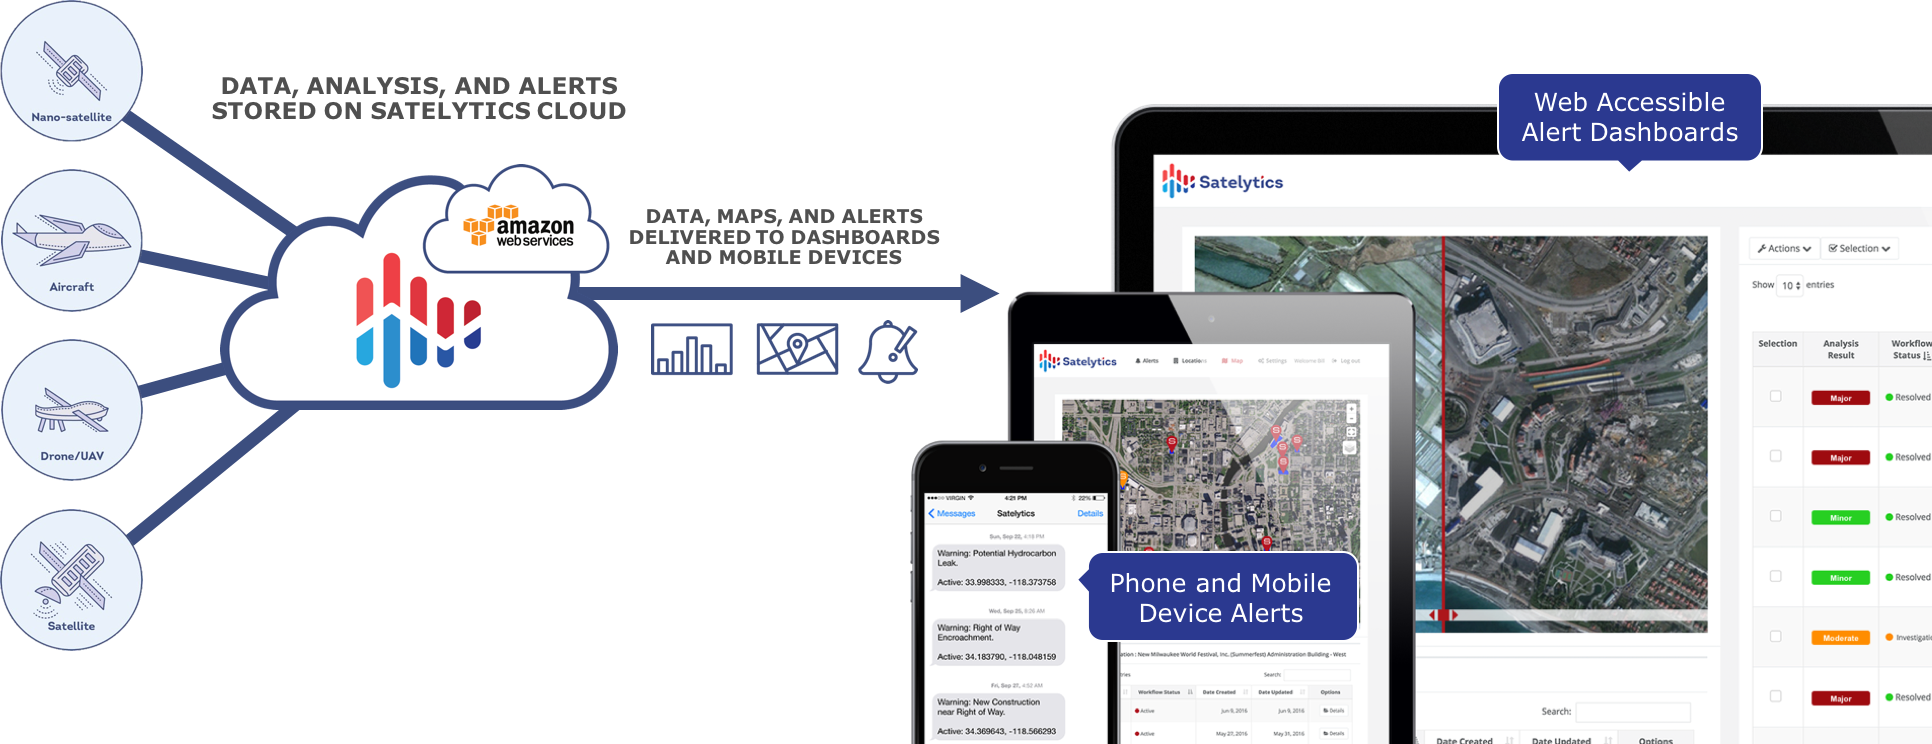 Using finely tuned, proprietary algorithms and the power of the cloud, Satelytics processes volumes of aerial imagery from a variety of sources and collates this data into web accessible dashboards and maps as well as alerts to mobile devices or even to other software via a rich API.